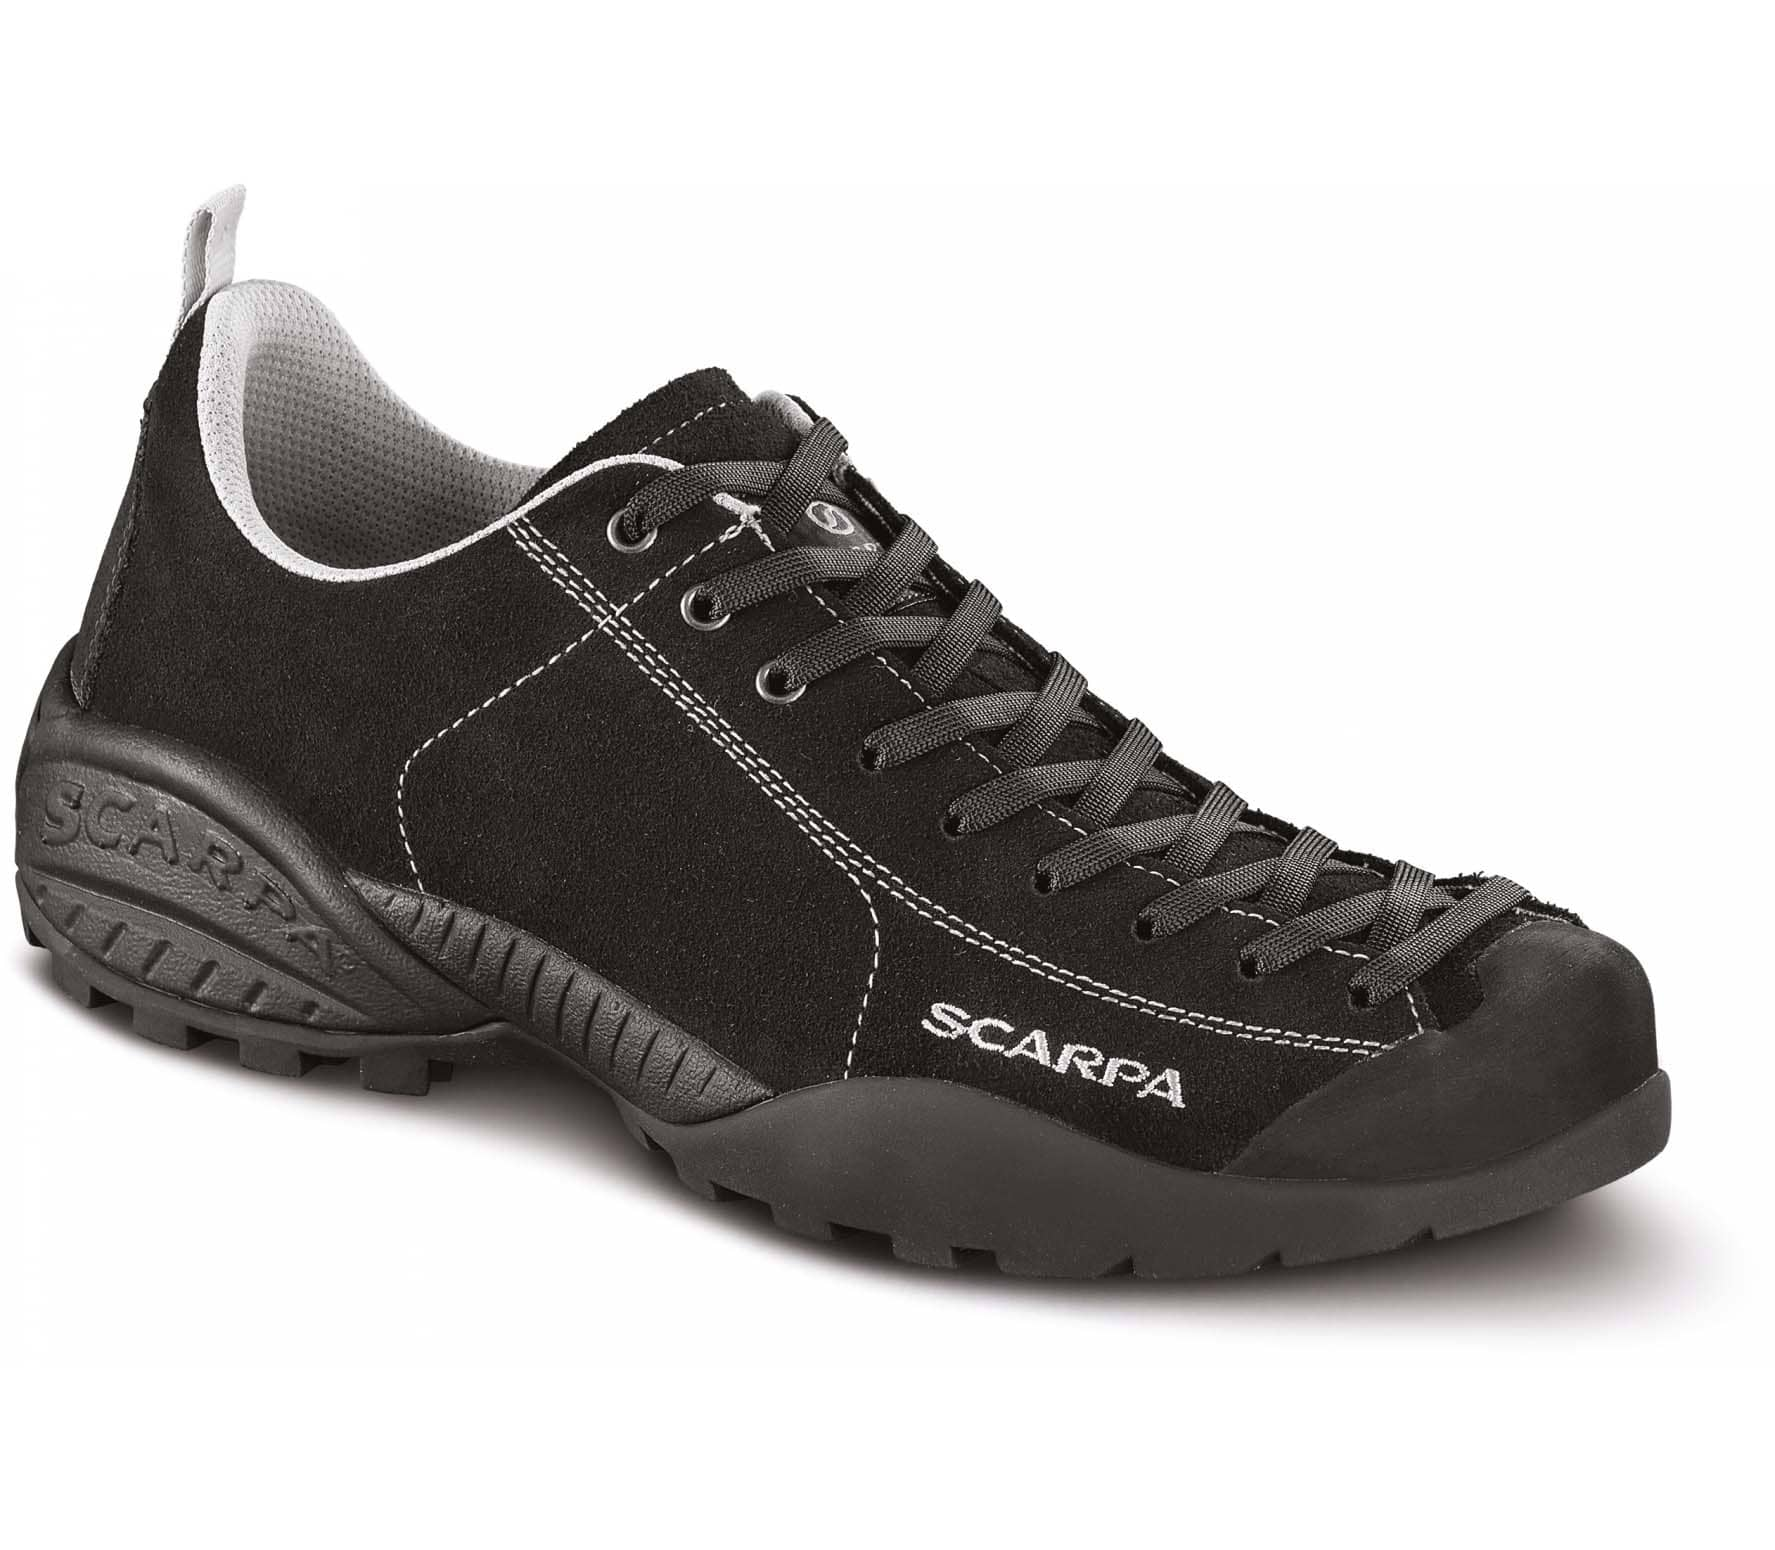 new products dfc6d 1ad7c Scarpa - Mojito mountain lifestyle shoes (black)